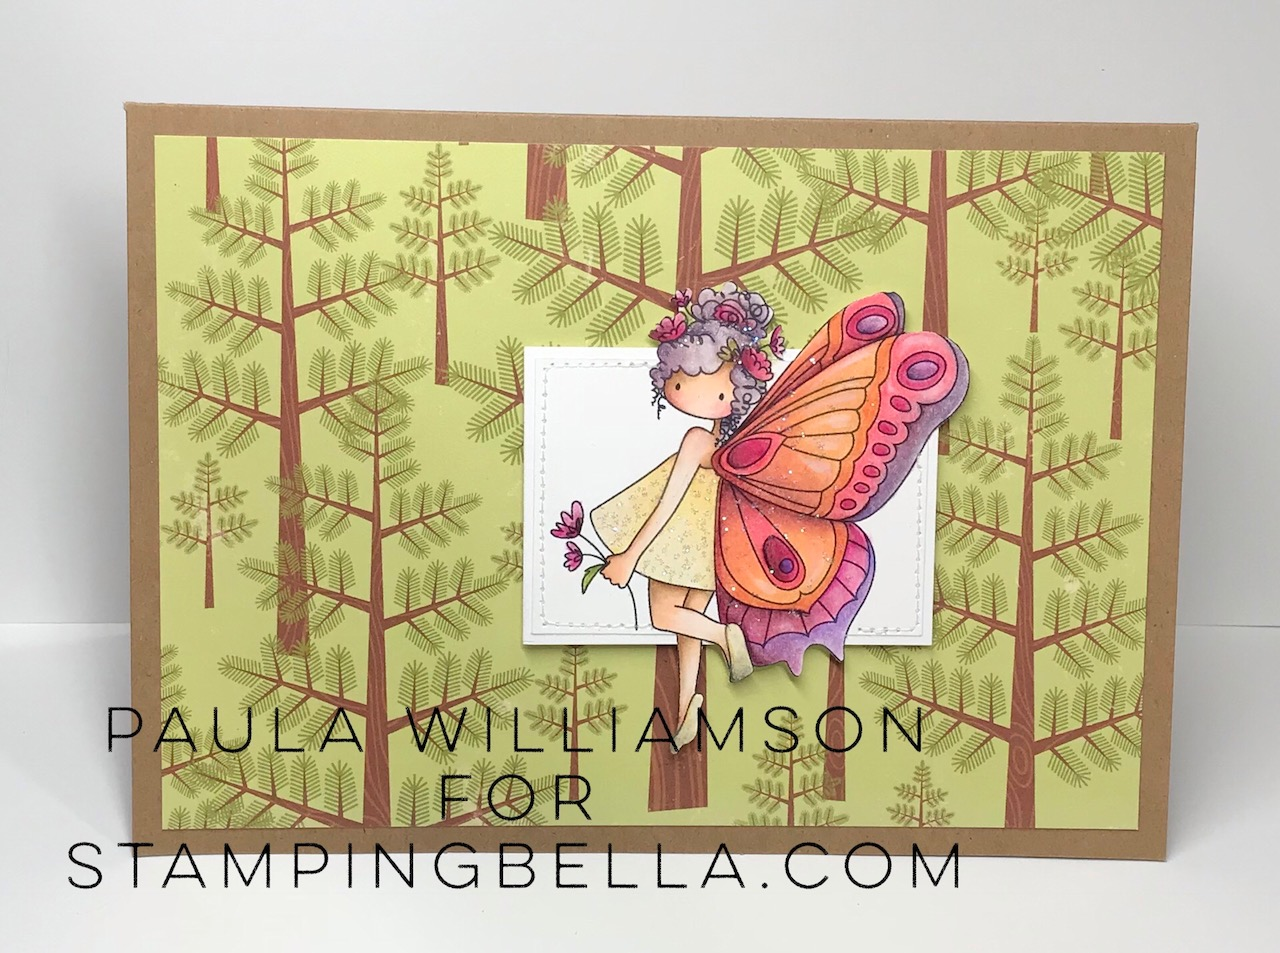 www.stampingbella.com: rubber stamp used : Tiny Townie butterfly girl Brianna , card by Paula Williamson